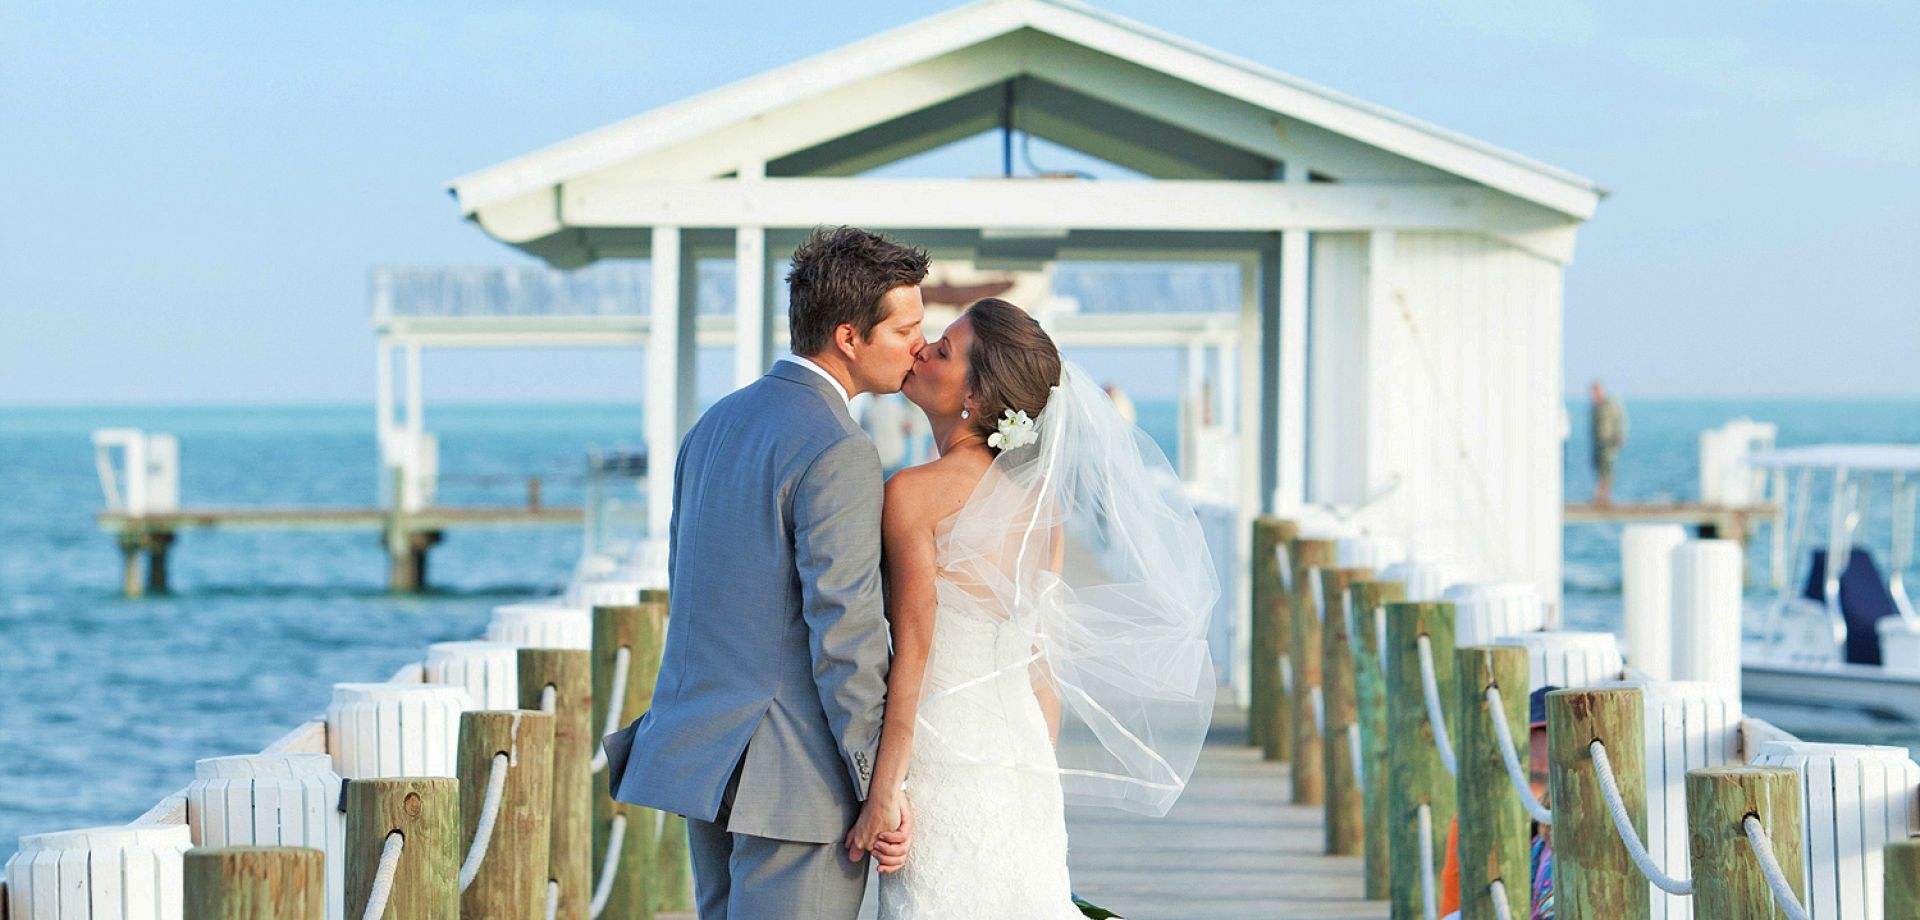 Newly Married Couple Kiss on the Pier